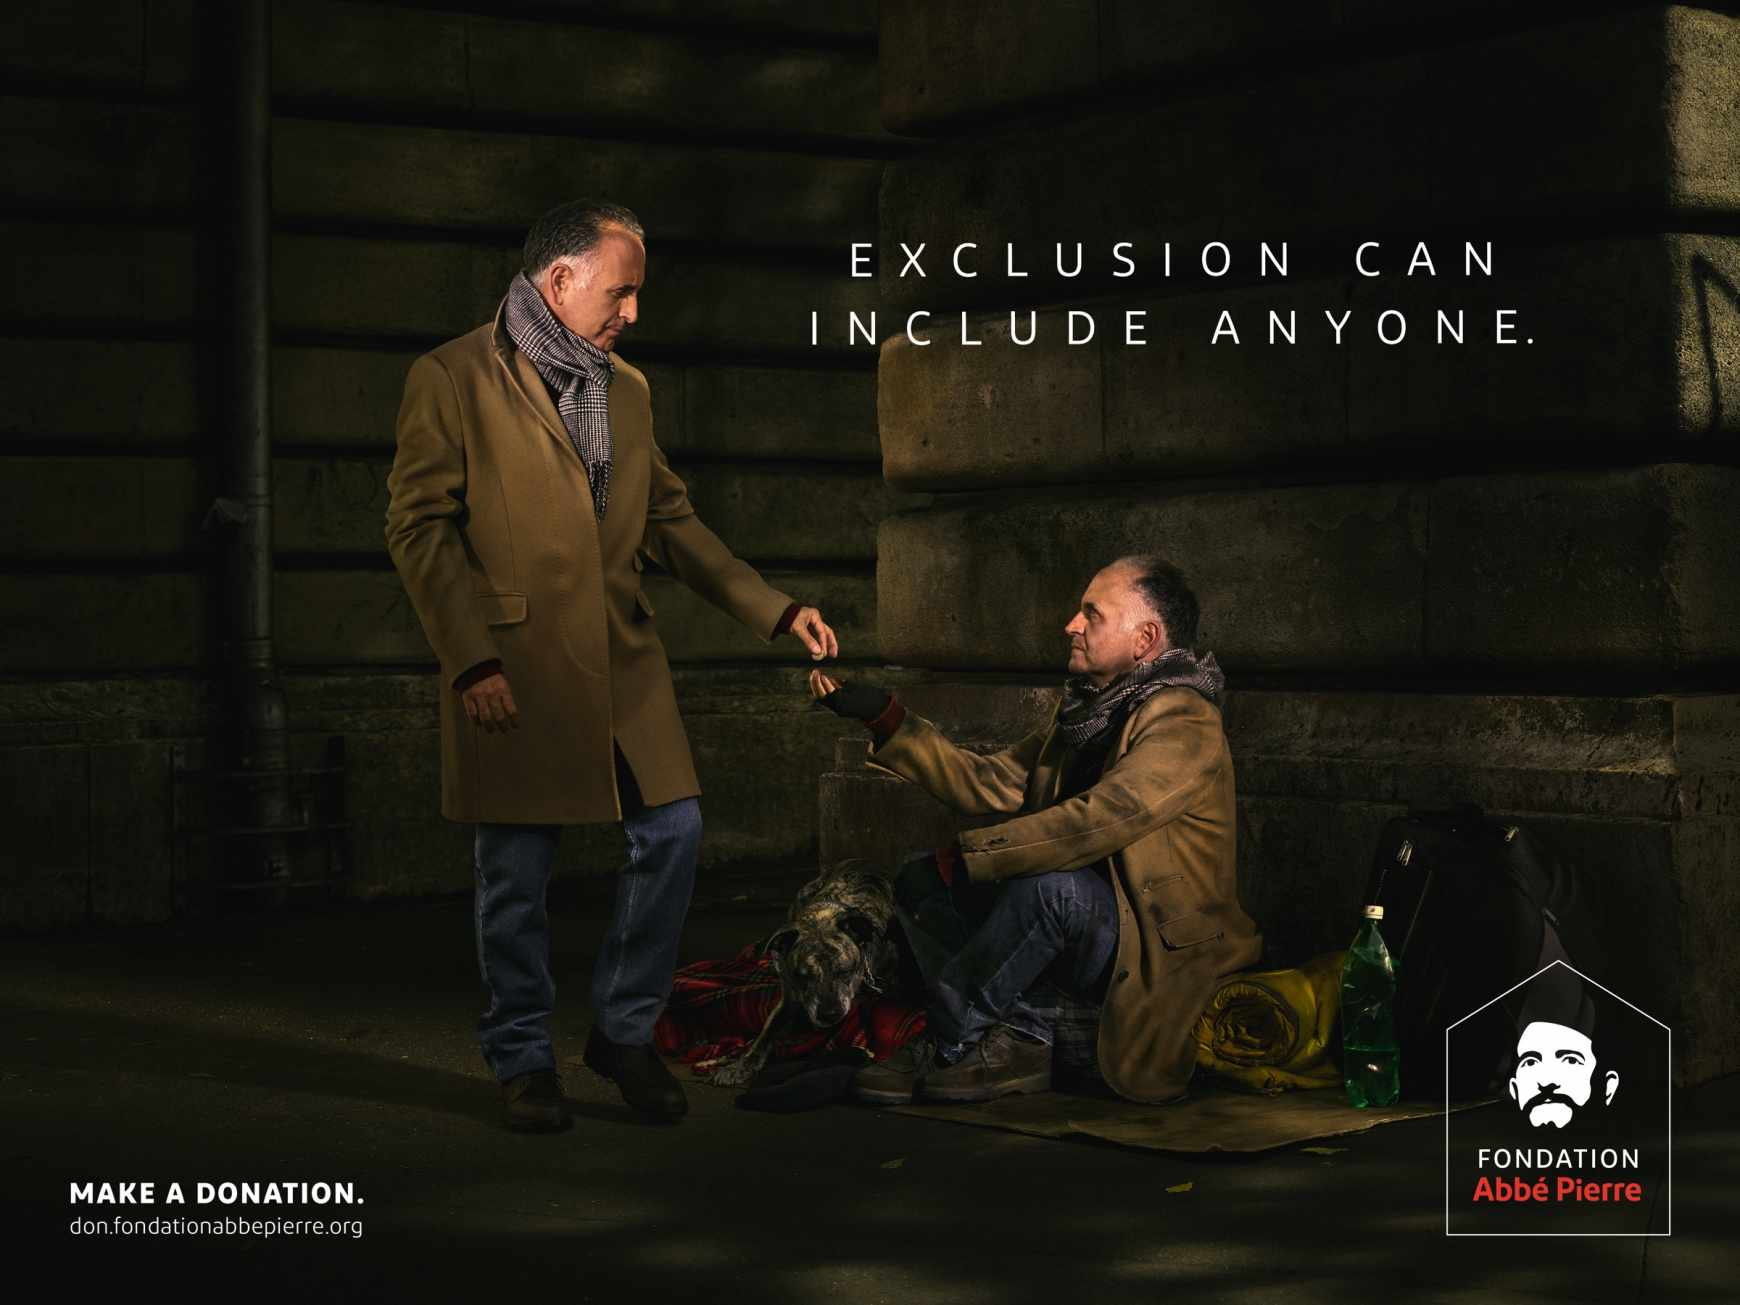 Fondation Abbé Pierre Outdoor Ad - Exclusion can include anyone, 1